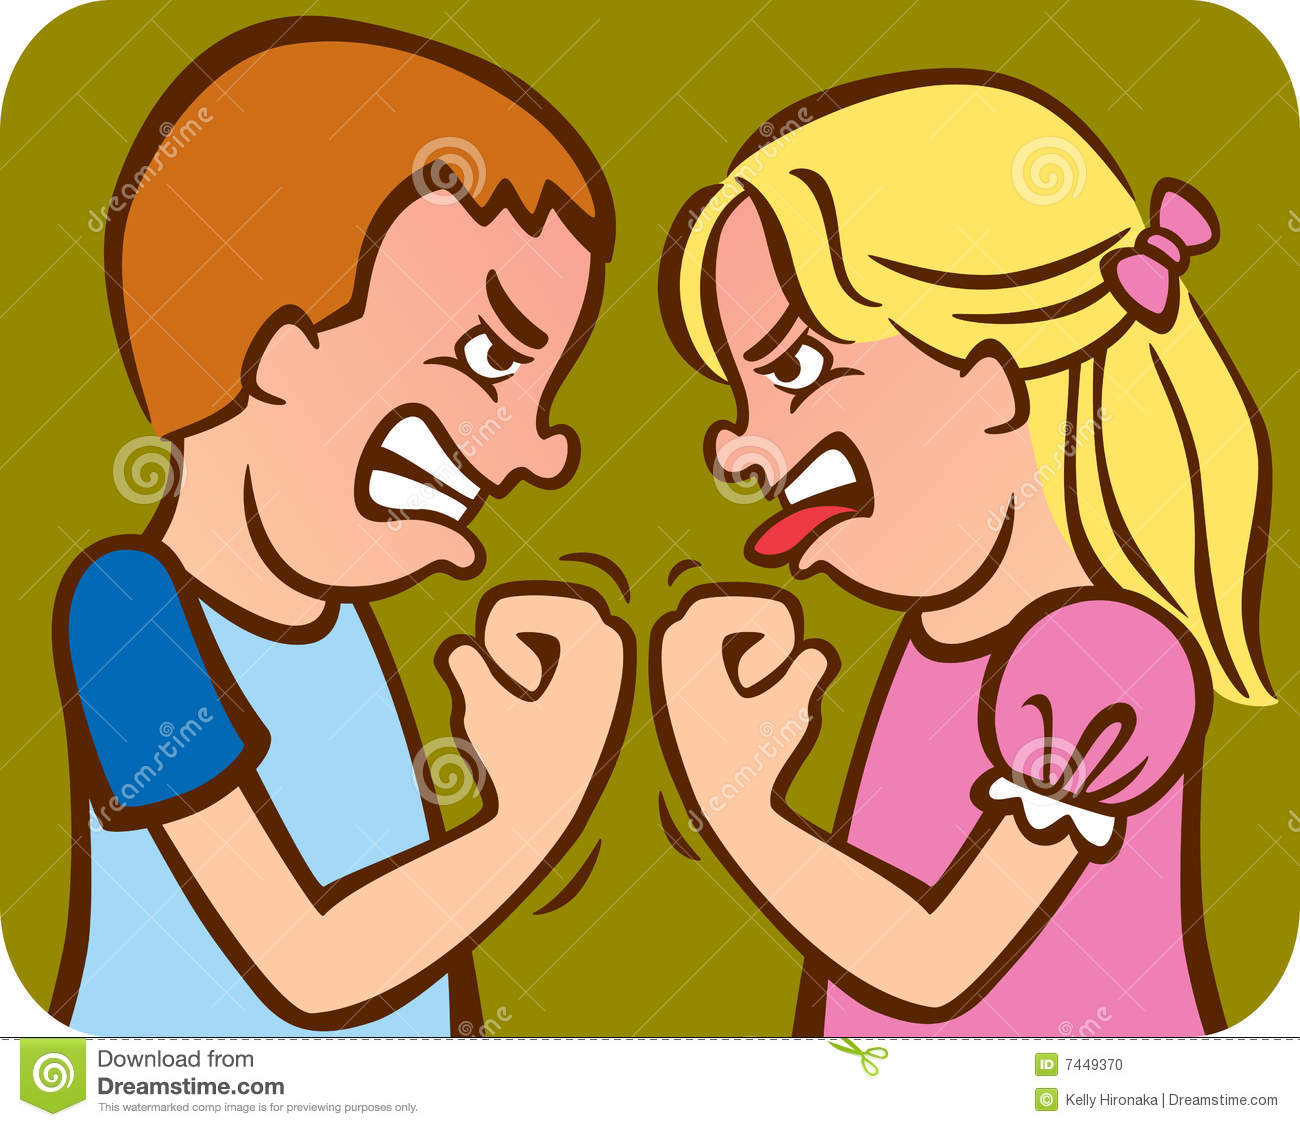 And Sister Arguing Fighting With Each Other Mr No Pr No 4 2089 16